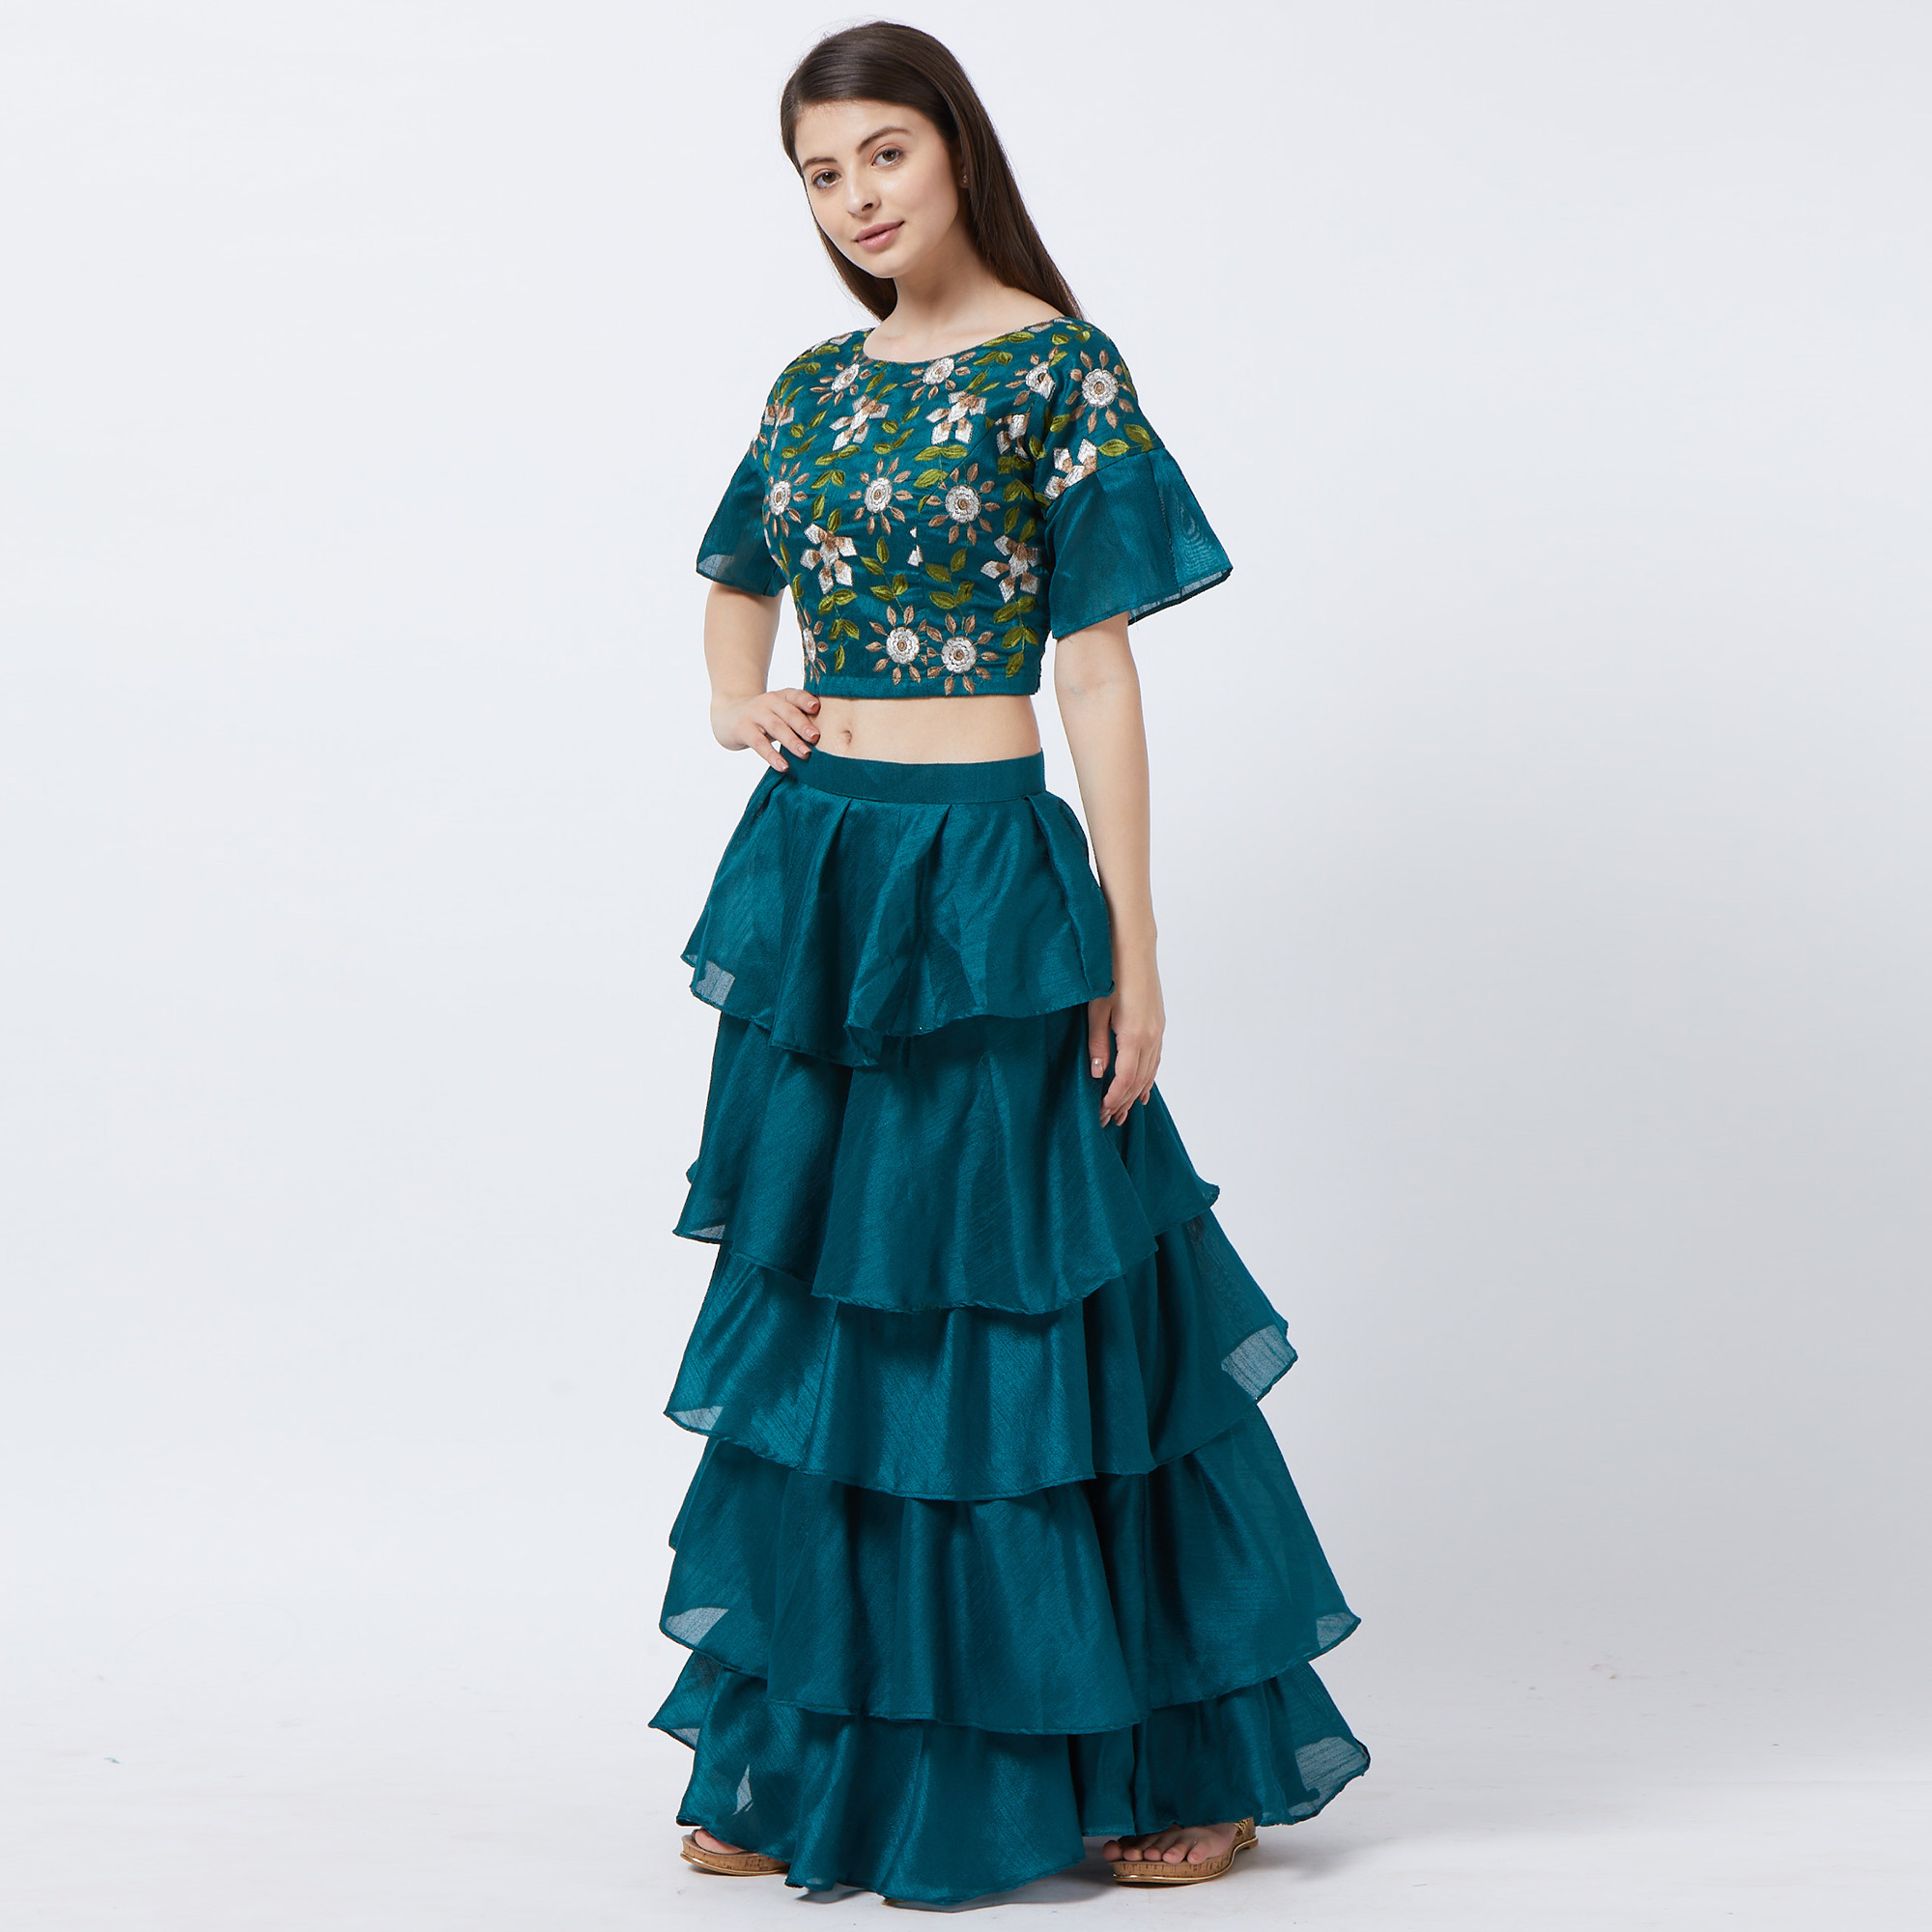 Refreshing Turquoise Green Colored Partywear Designer Embroidered Banglori Silk Lehenga Choli